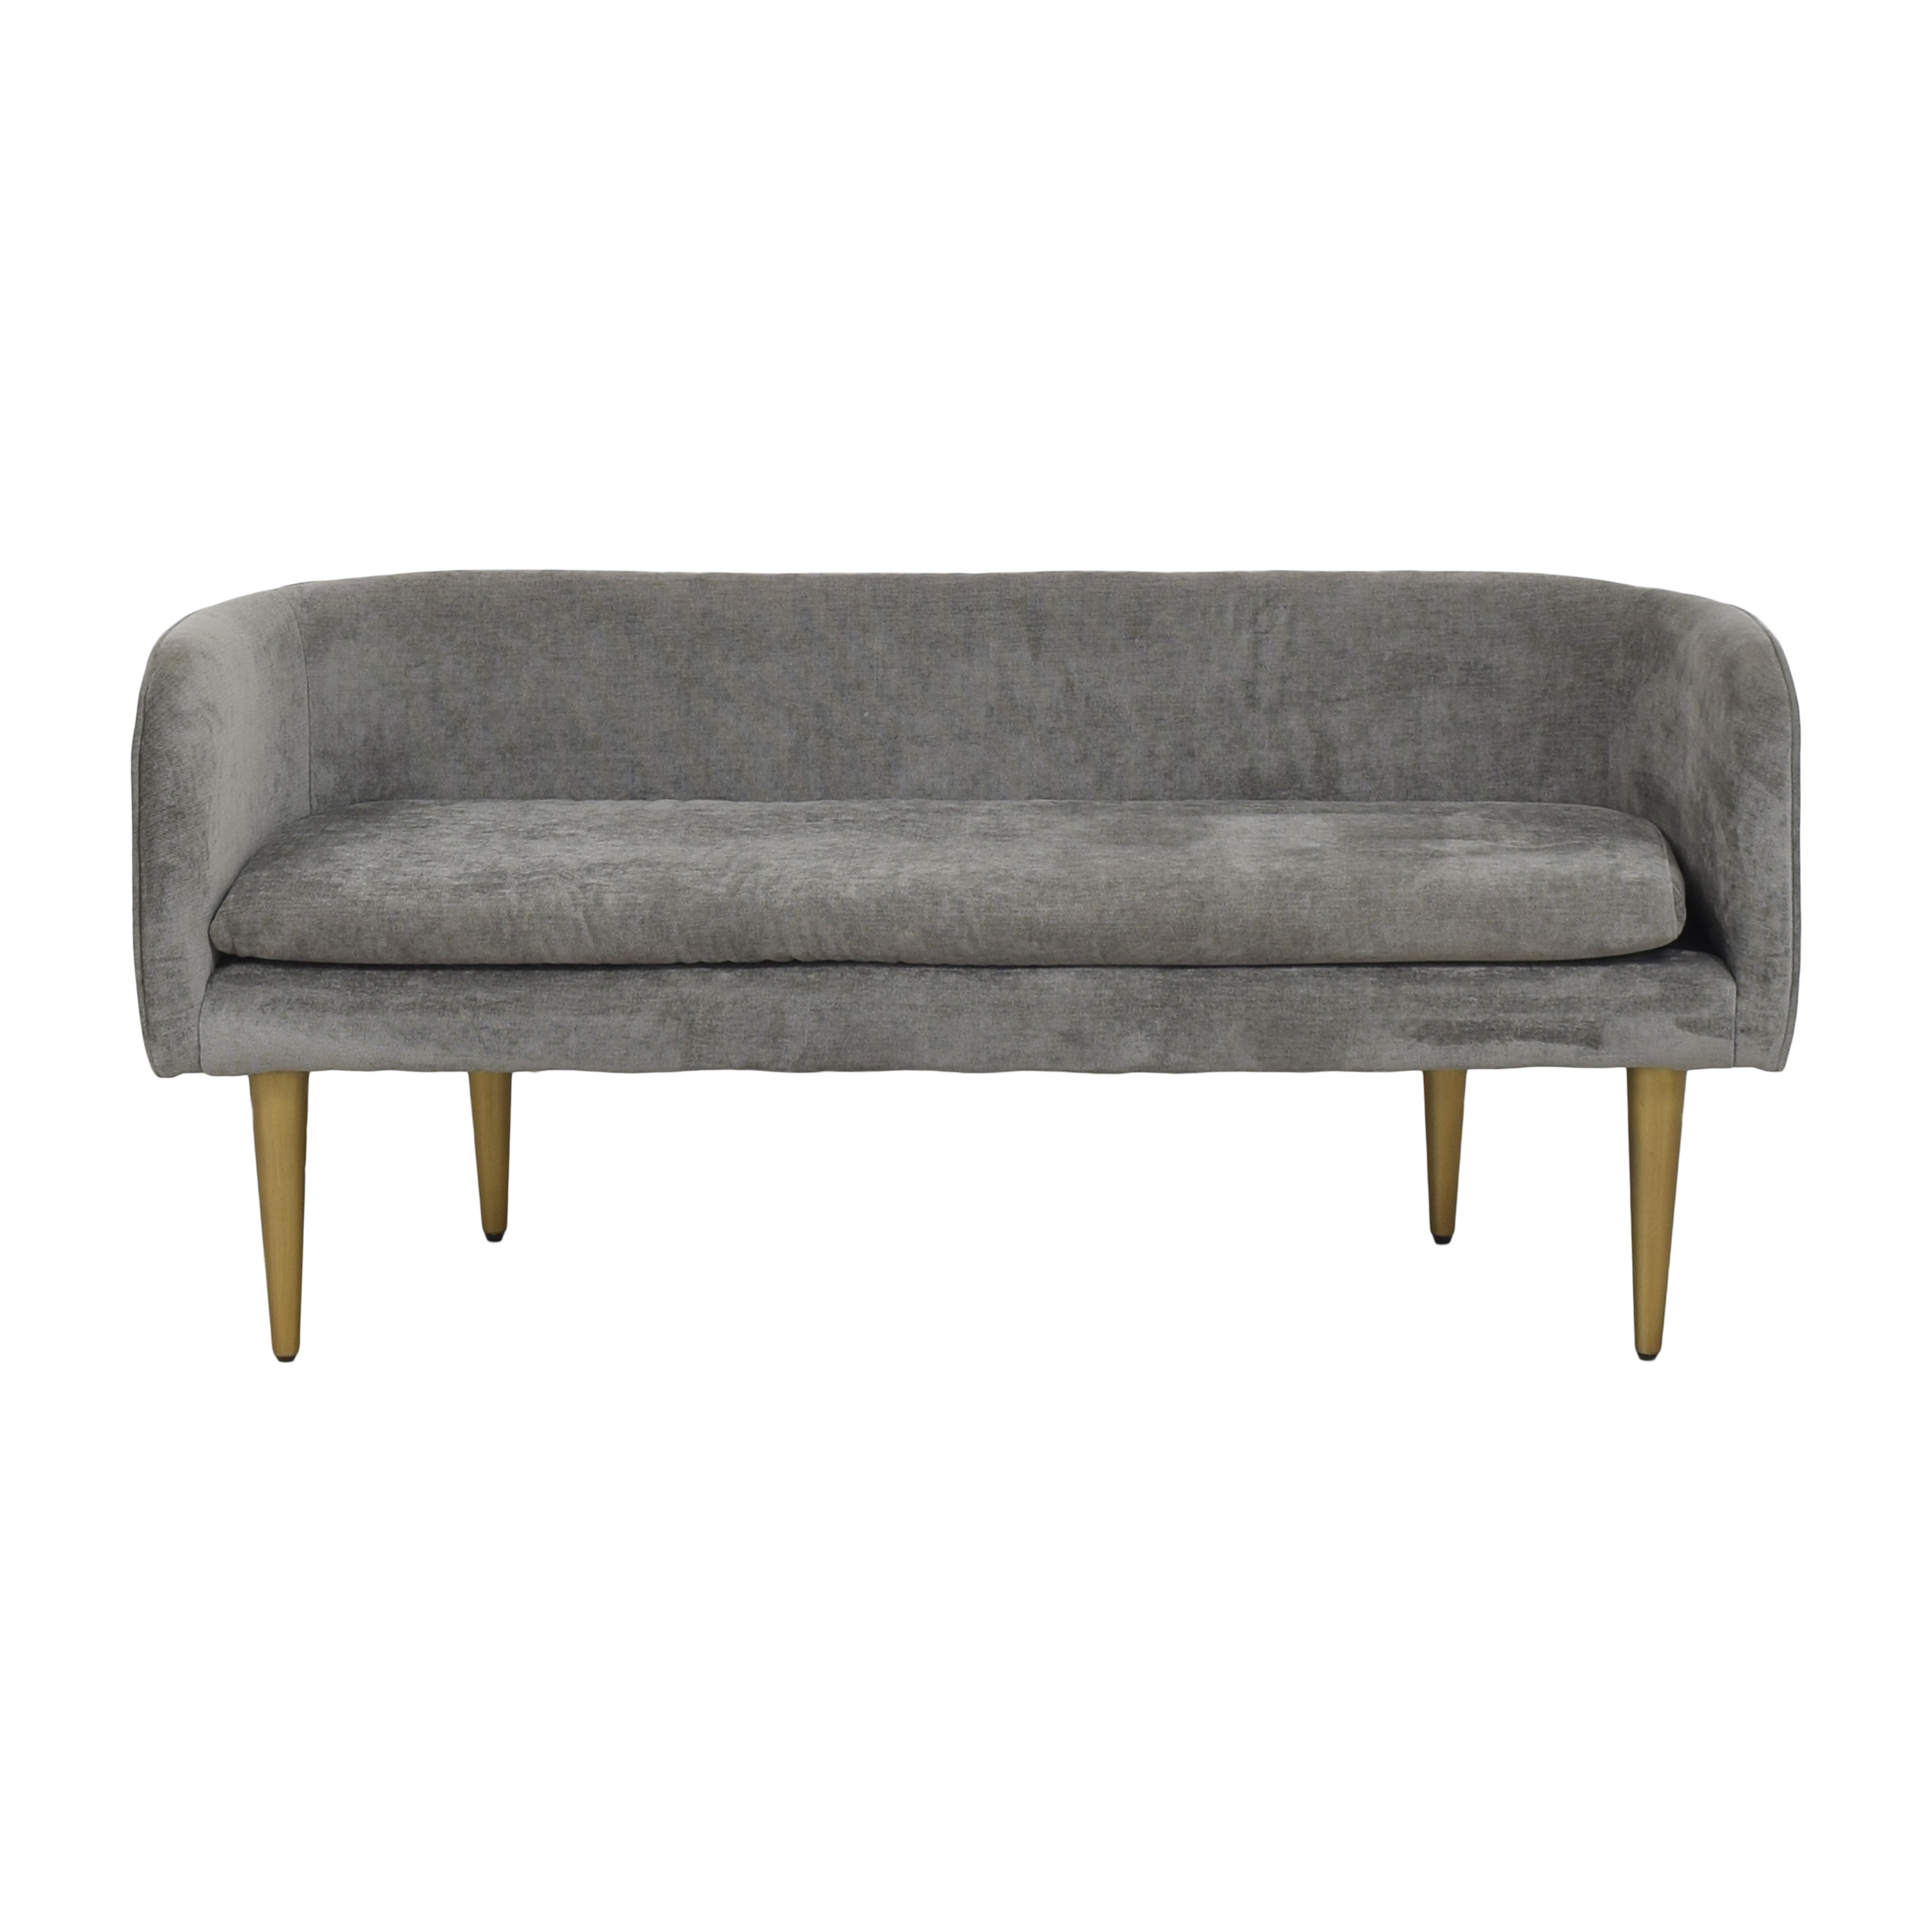 West Elm Celine Bench / Chairs